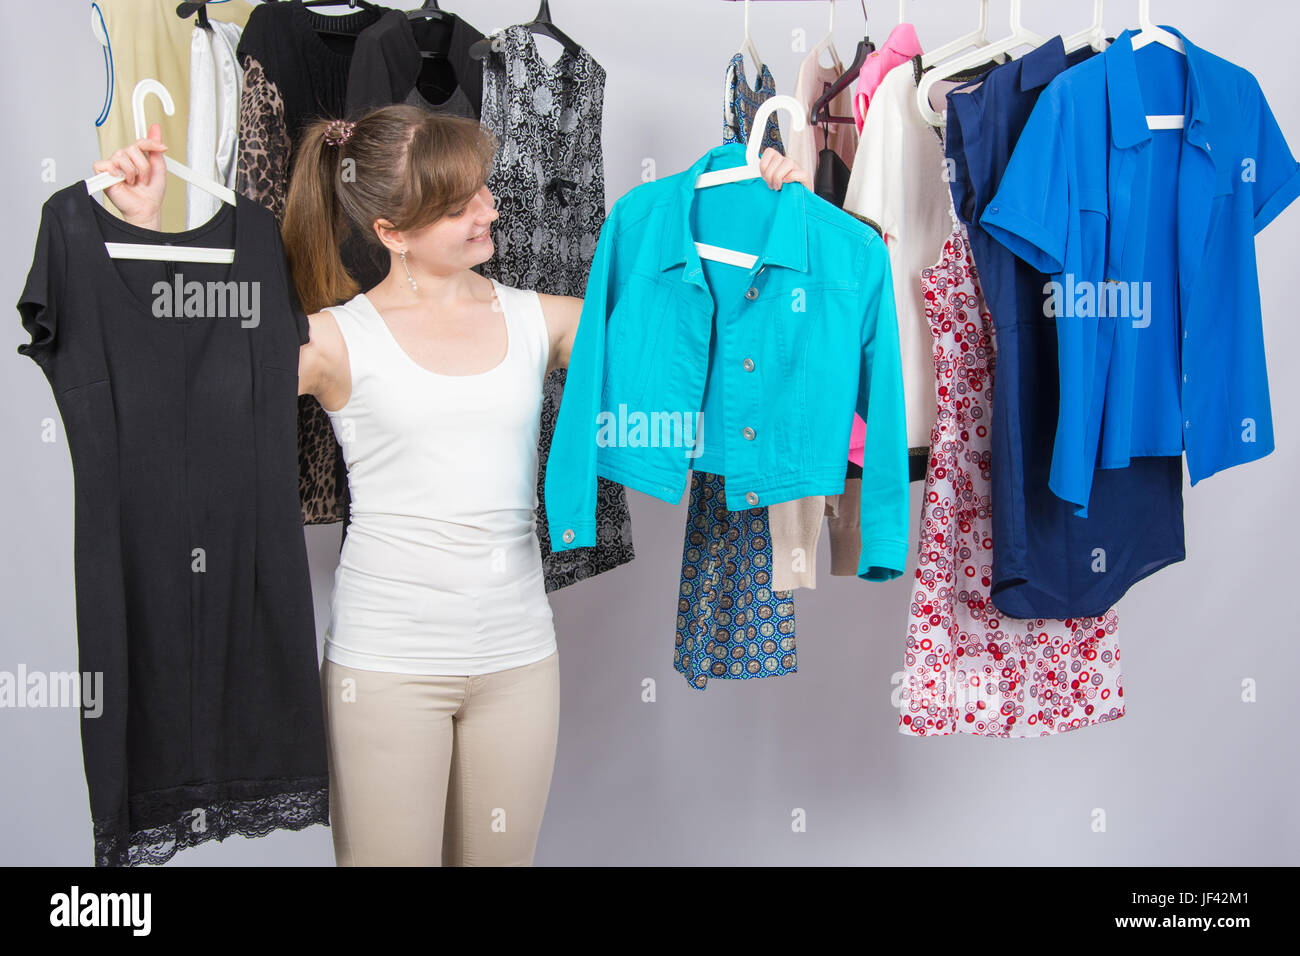 Girl chooses clothes in her wardrobe - Stock Image